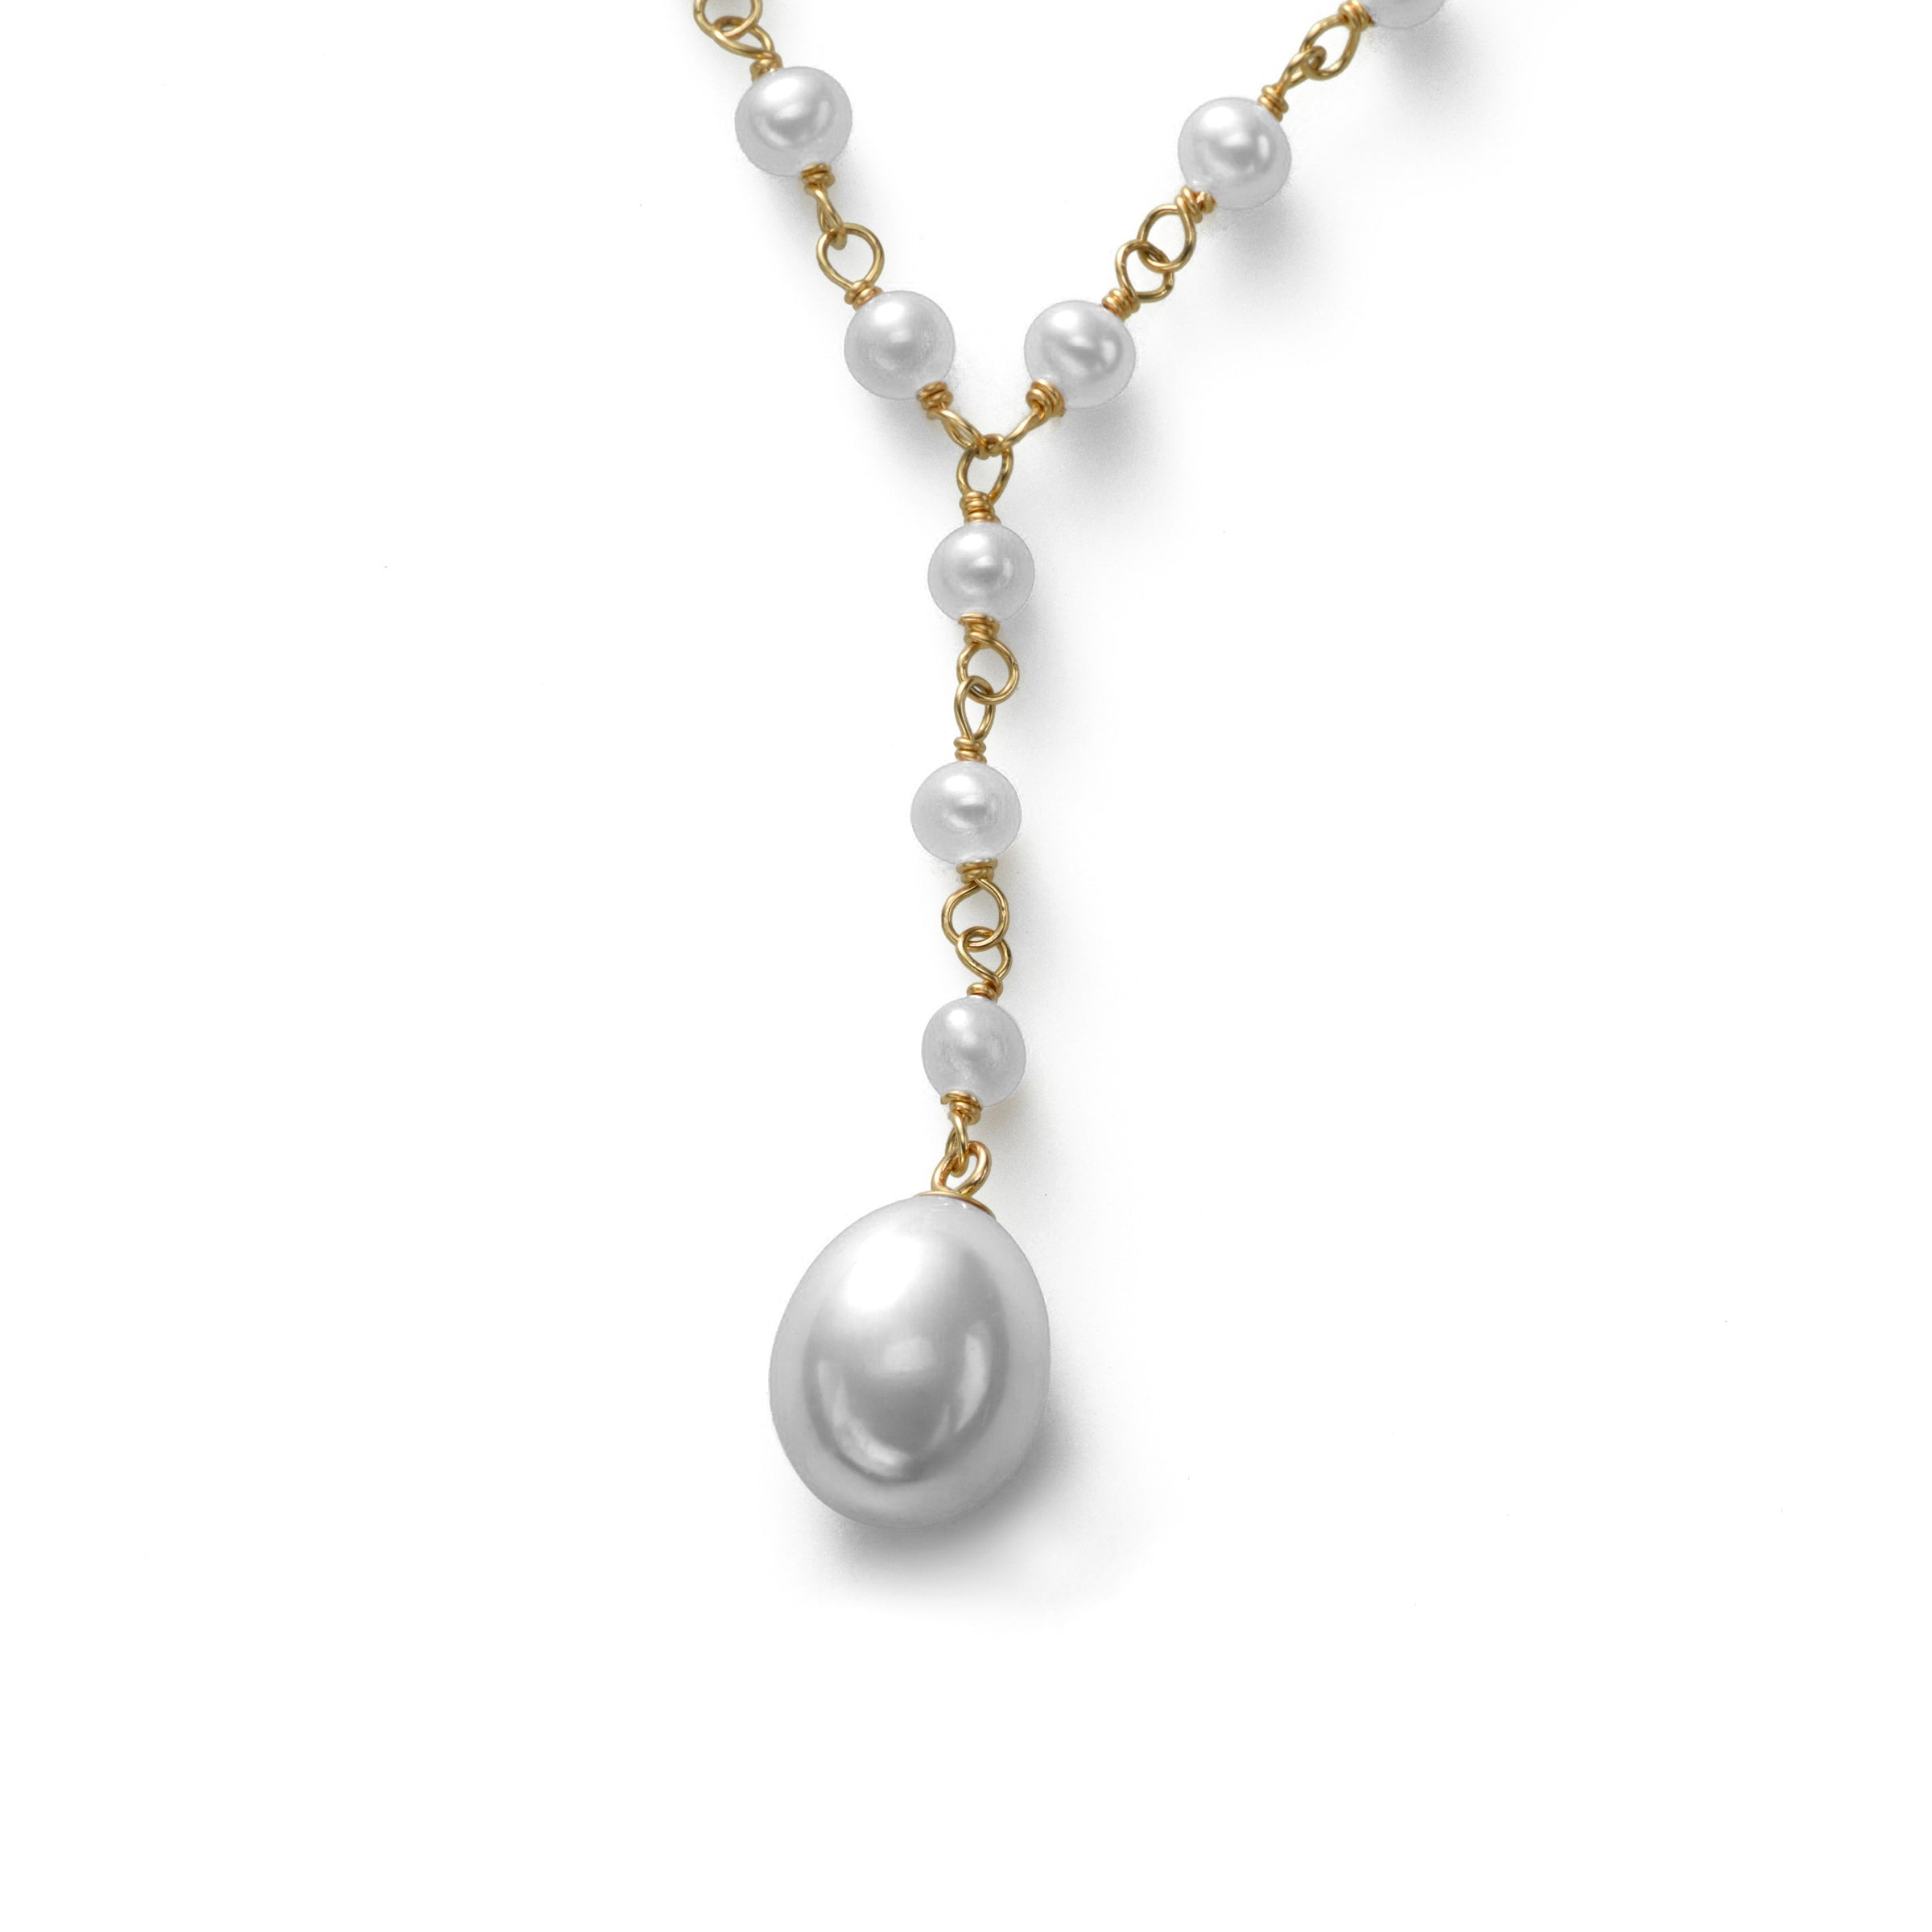 White Cultured Freshwater Pearl 17 Iinch Necklace with Drop